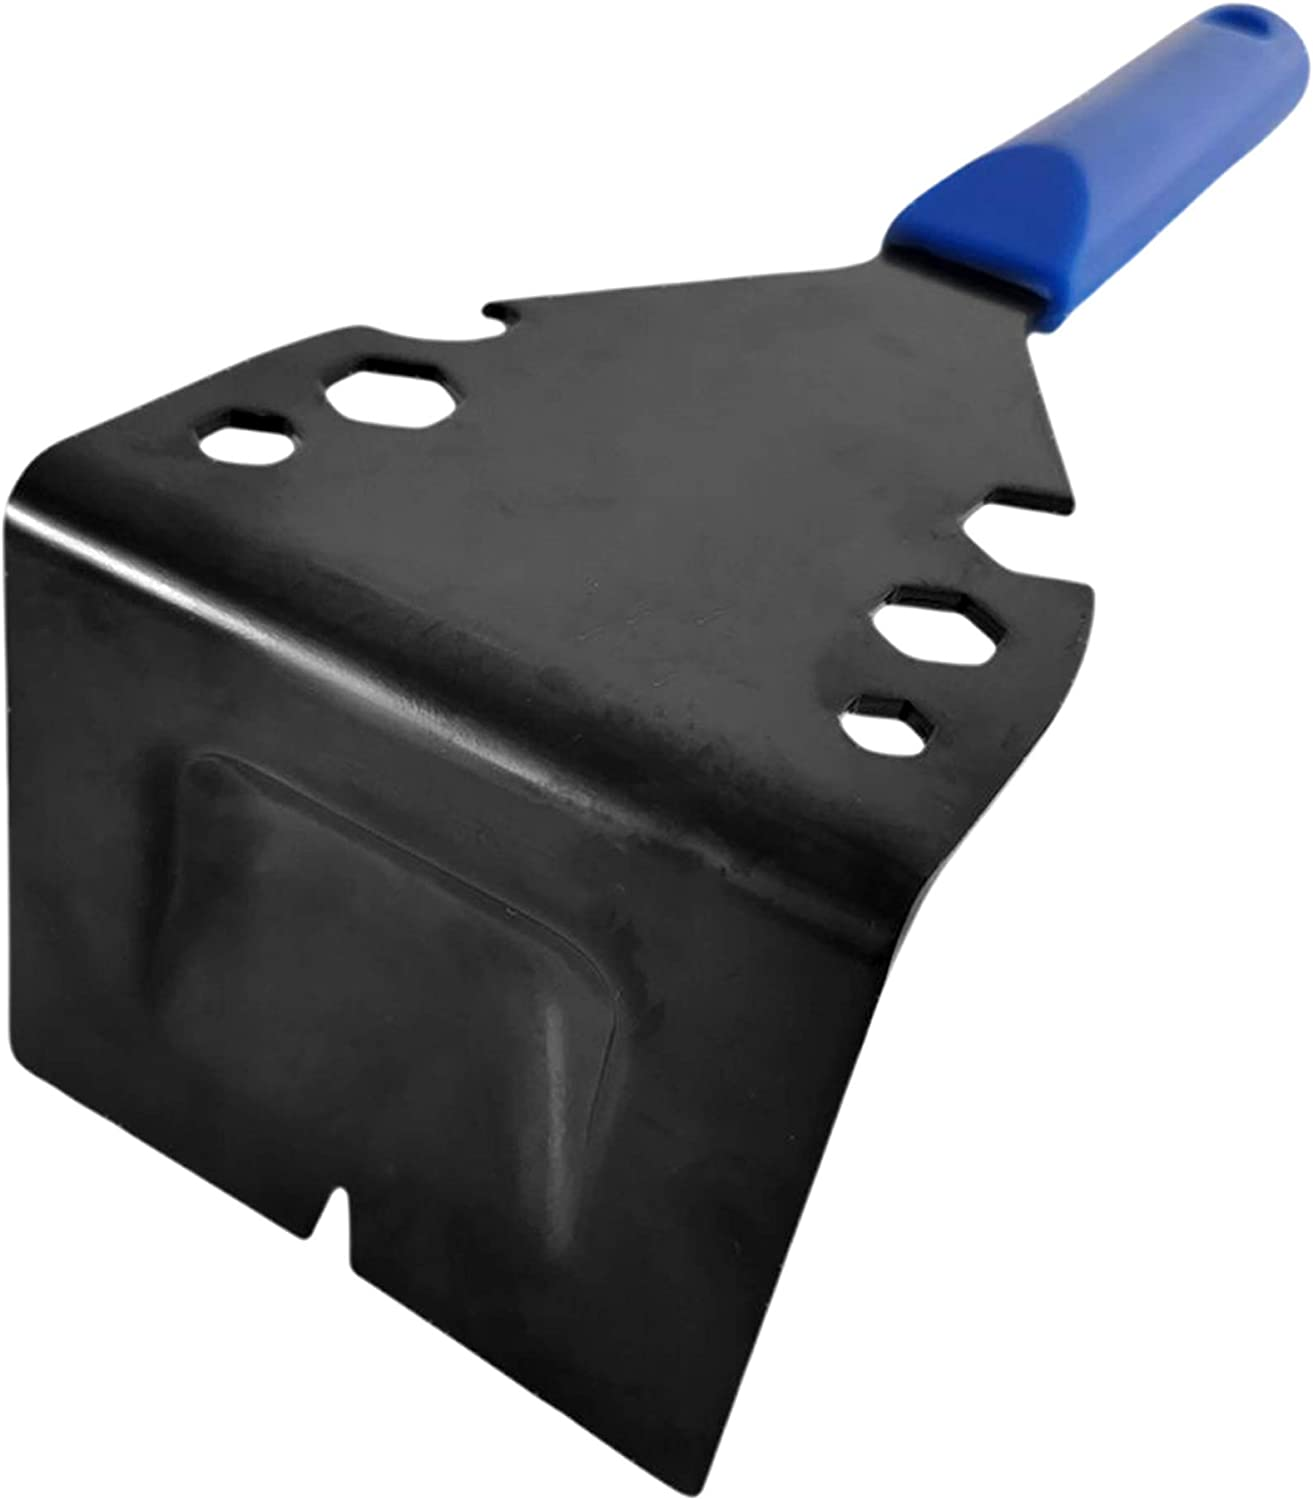 Tile Pry Bars Trim Puller Molding Steel Durable For Grip Purchase Wo Easy Cash special price